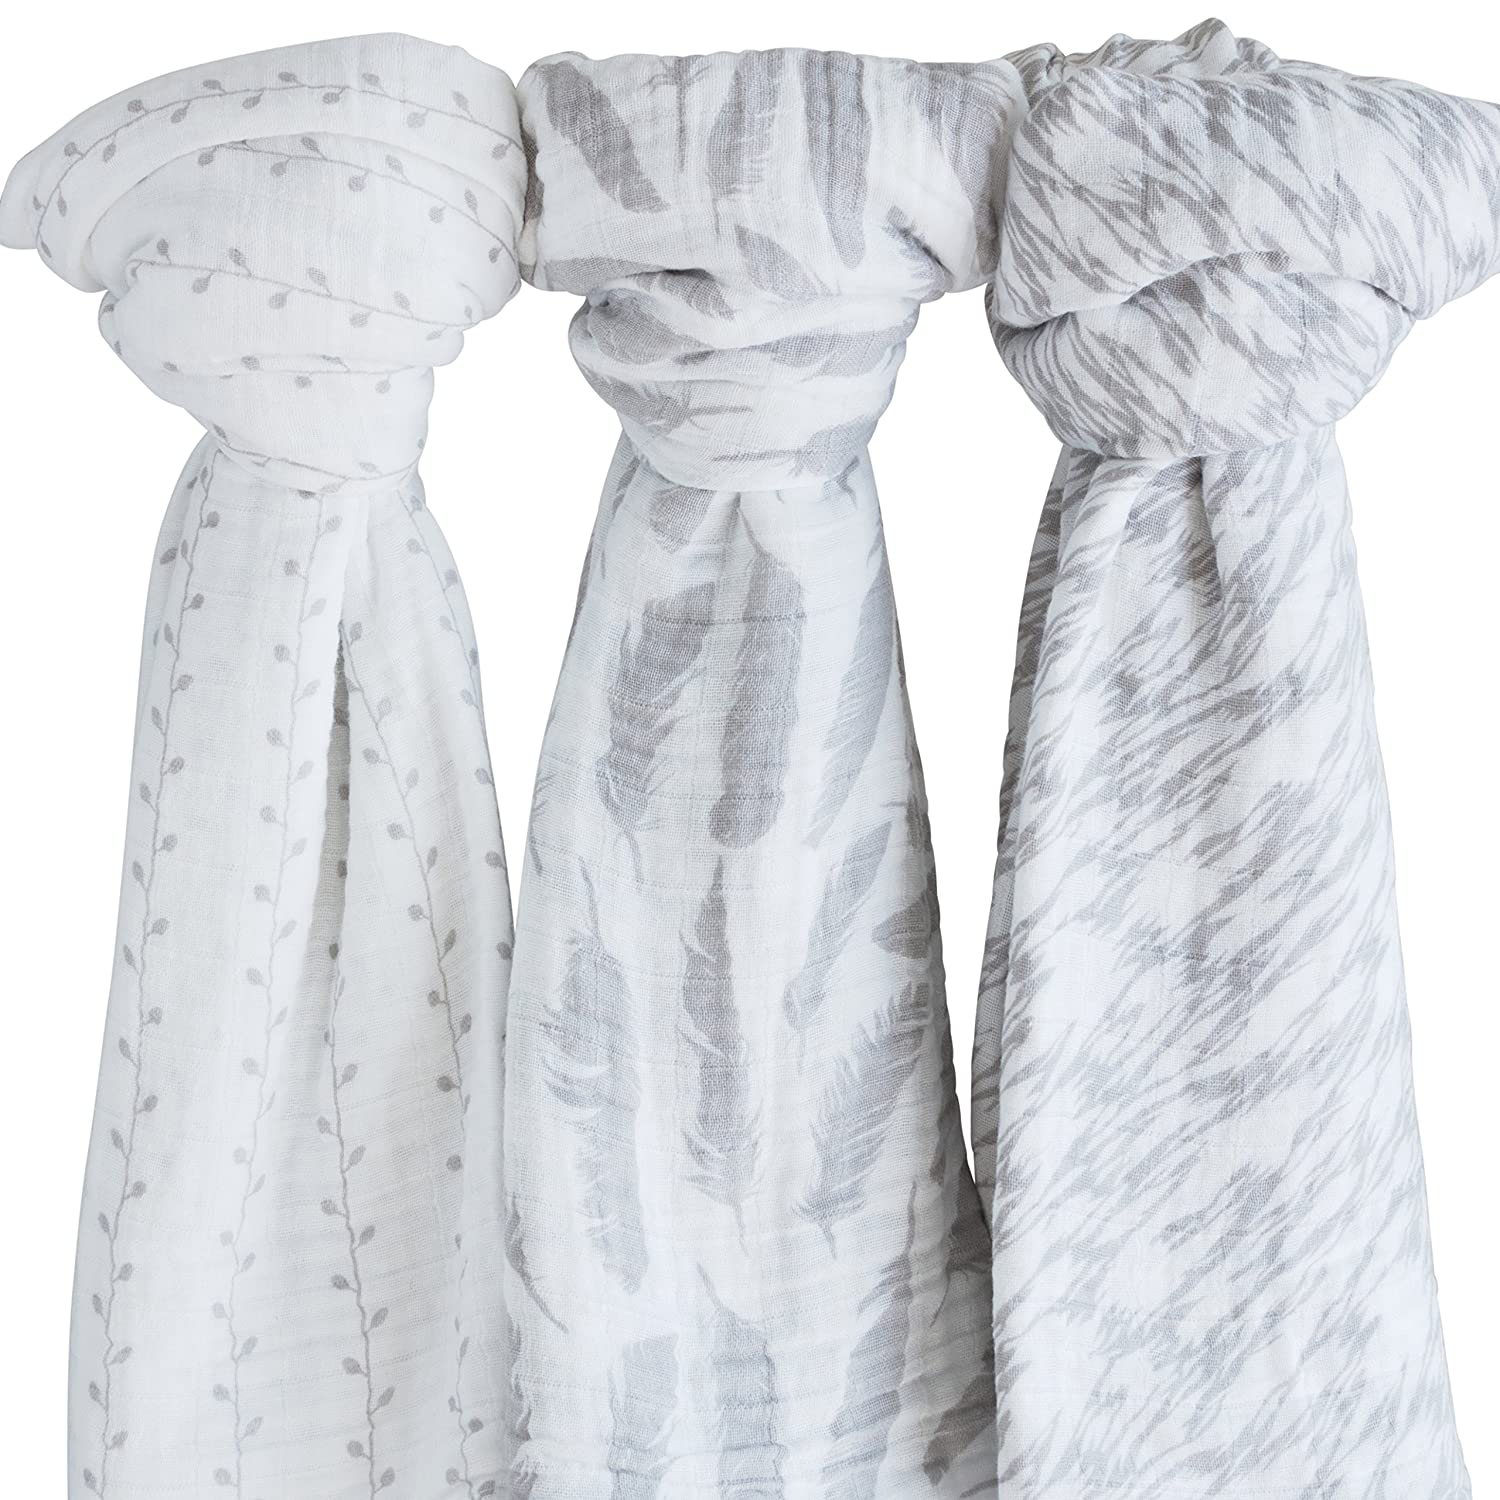 Muslin Swaddle Blanket 100% Soft Muslin Cotton 3 Pack 47'x 47' Classic Grey Combo Unisex for Baby Girl or Baby Boy Ely's and Co.